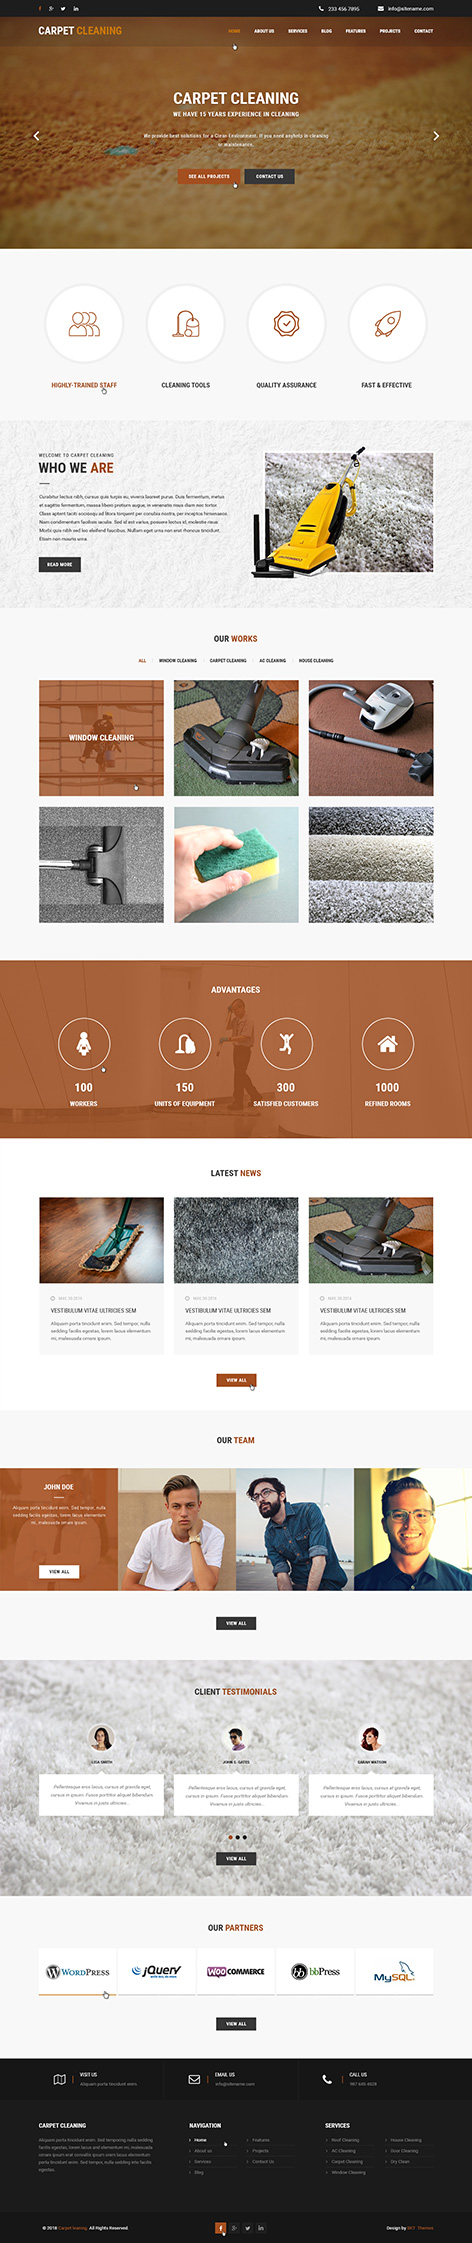 cleaning company wordpress theme1 - Cleaning Company